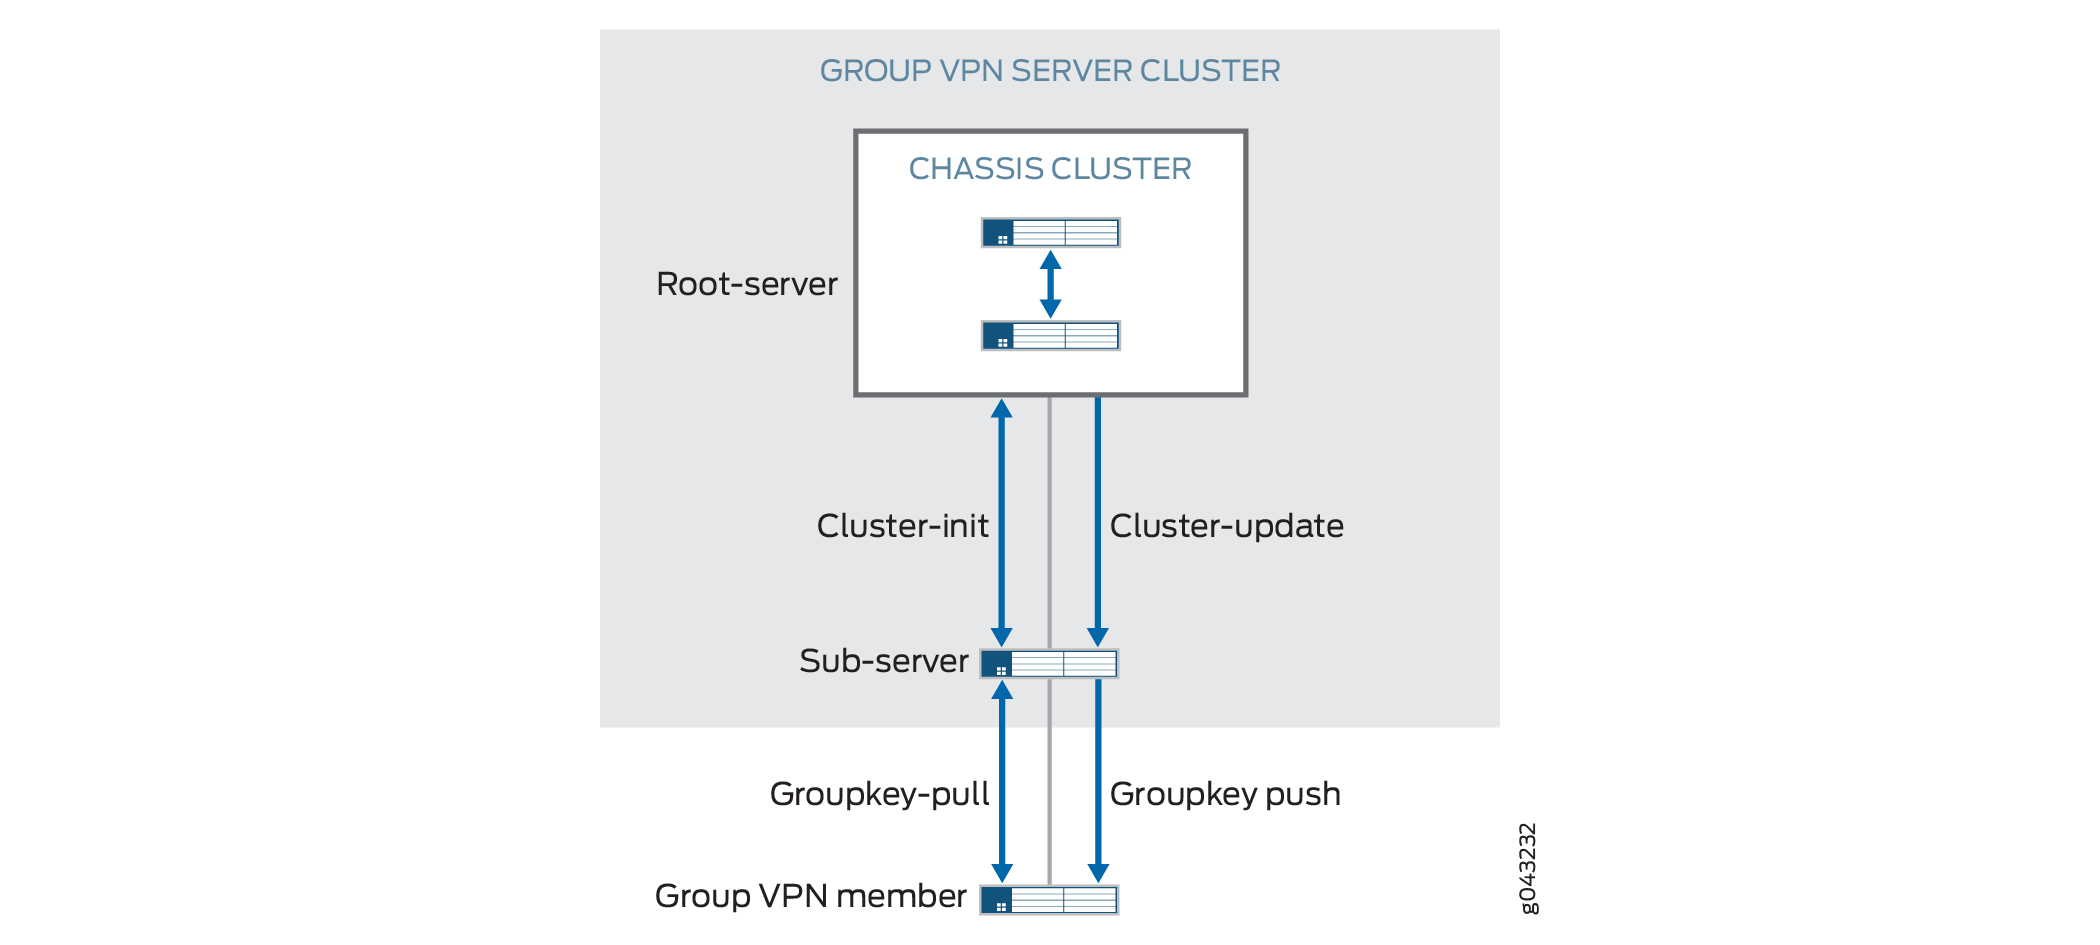 Group VPNv2 Server Clusters - TechLibrary - Juniper Networks